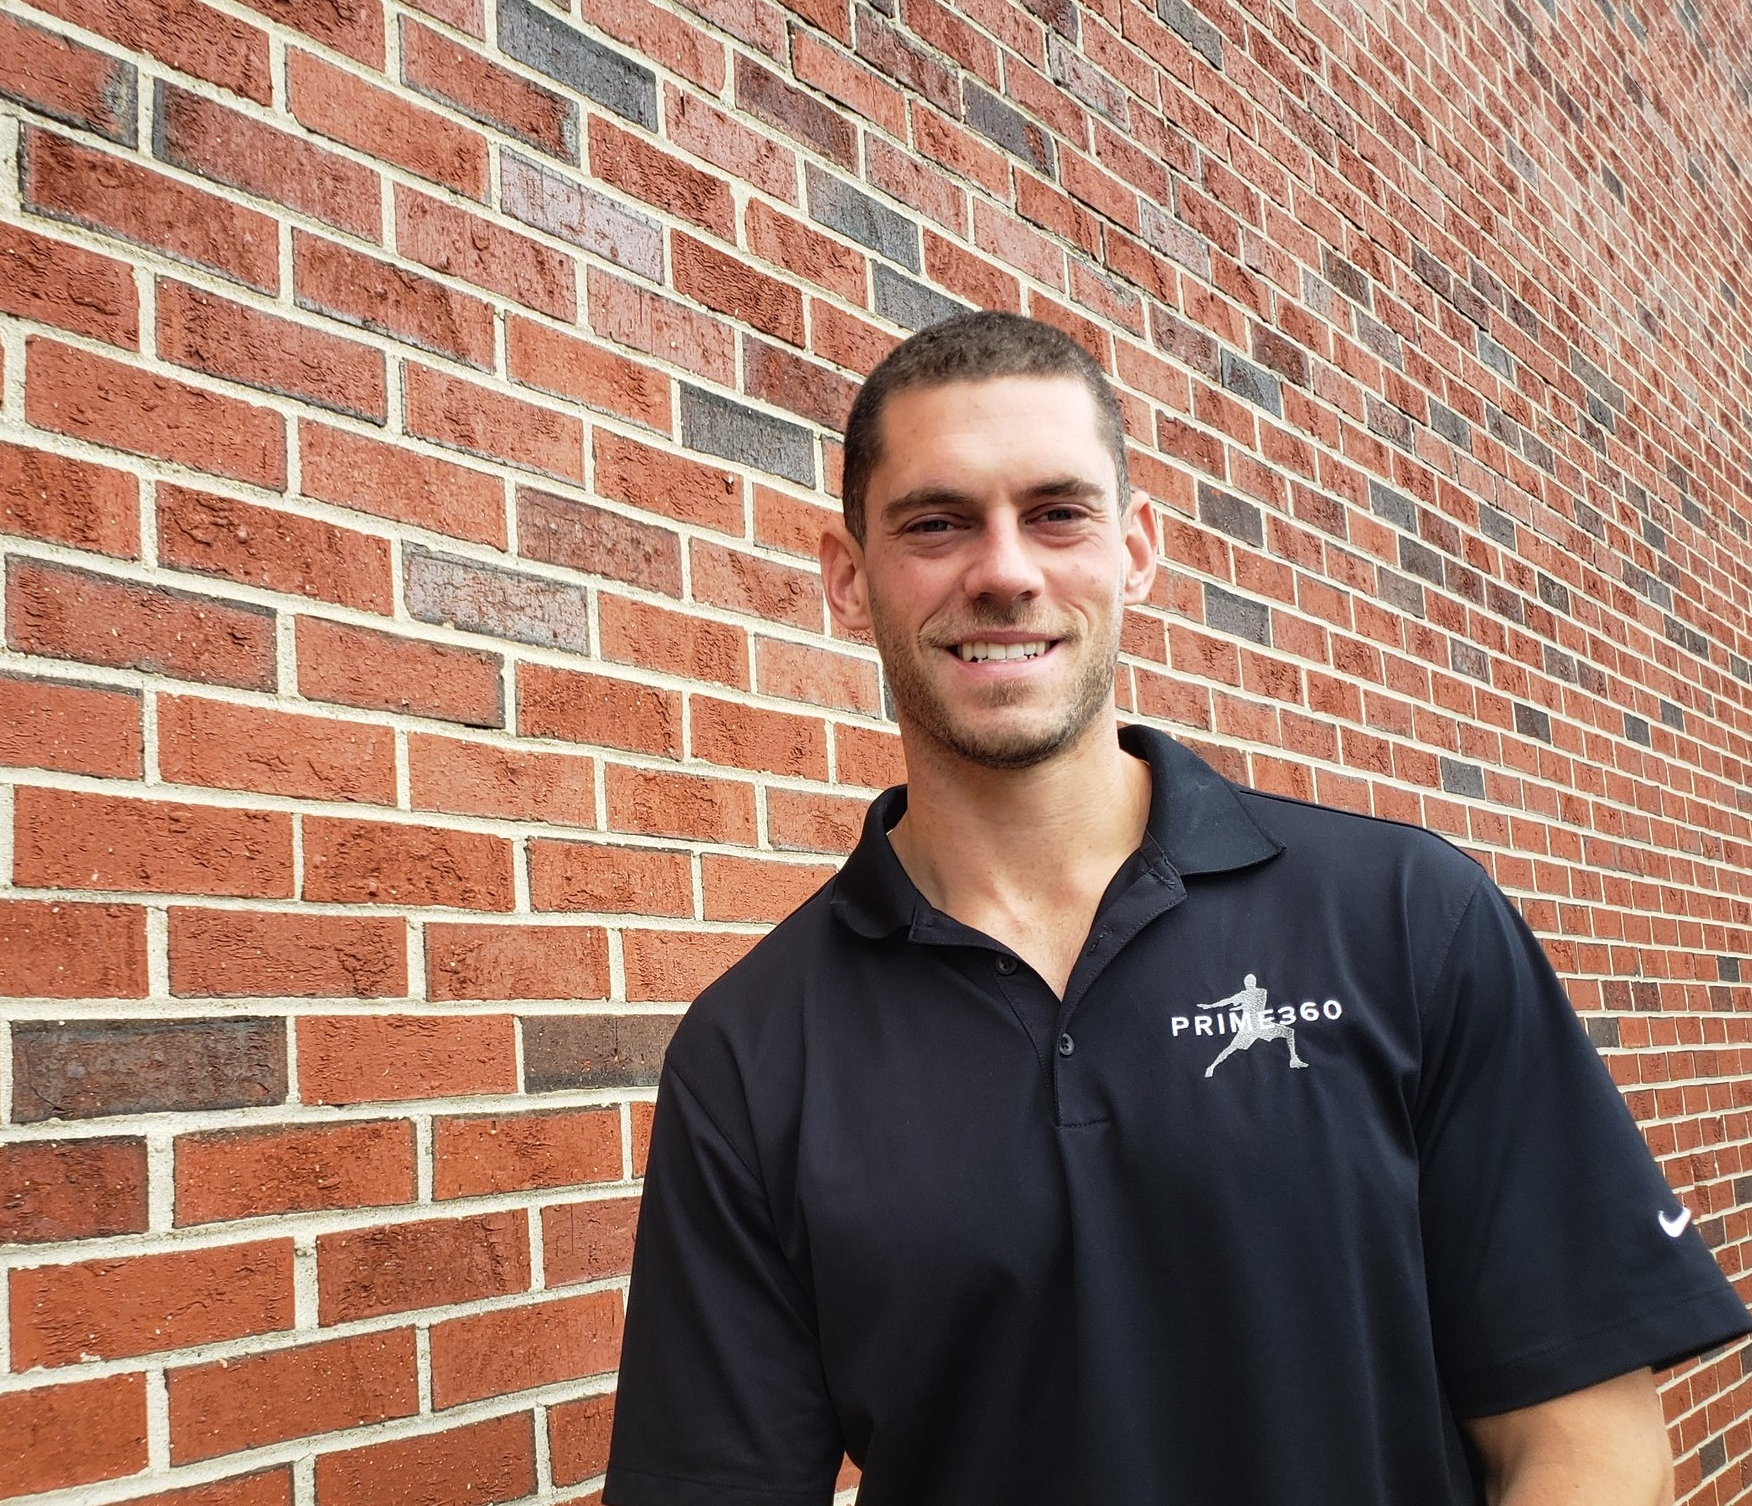 Hi Guys,   My name is Joe Murphy, Strength and Conditioning/Performance Enhancement Coach .  A Poland, Maine local, college athlete, and graduate from St. Joseph's College with a B.S. in exercise science.I specialize in strength and conditioning and sports performance. Sports and fitness have played major roles throughout my life.My passion for wellness began early and was a driving factor in my decision to get involved in the fitness industry. I have participated in several internships that have included strength and conditioning, personal training and coaching.   These experiences, along with countless hours of independent training, have molded and refined my philosophies of functional training into my everyday workout routines and have gotten incredible results.I understand that most people think they know the secrets of fitness: to eat healthier and exercise more, but take a step back and think about the concepts we're talking about and it all makes complete sense.I think beyond anything, though, the motivation and consistency is what really calls for my help and I believe I have gift in helping others overcome barriers they may not think they could overcome on their own. I believe I have a job to do and that's to take the capabilities of  your body and make the best version of yourself. I strive to maintain a fit and healthy lifestyle for myself and would love nothing more than to use my experience and knowledge to help others achieve the same.  Your Coach/ Teammate/ Friend,  Joe Murphy